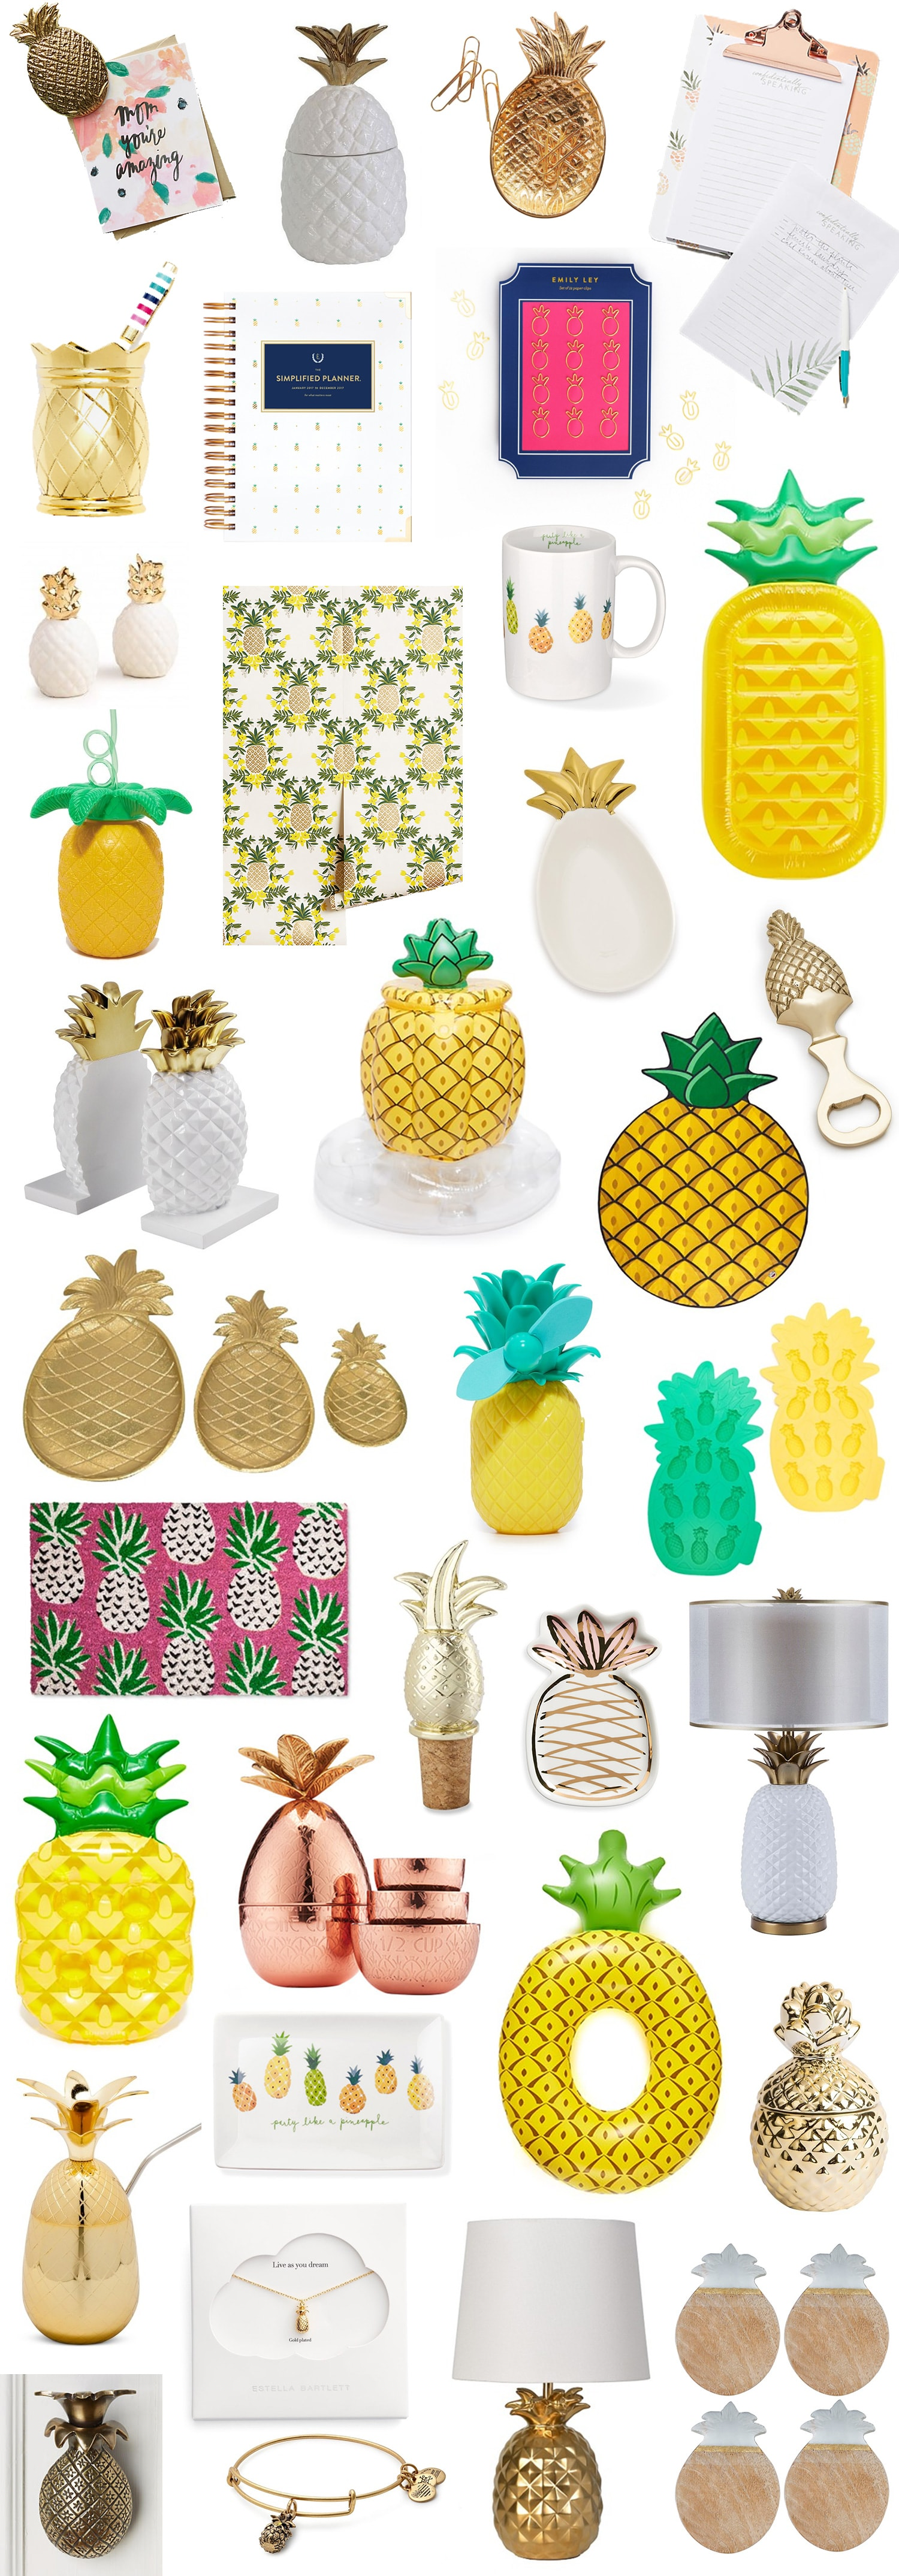 Cute Pineapple Home Decor, Office, + Gift Items